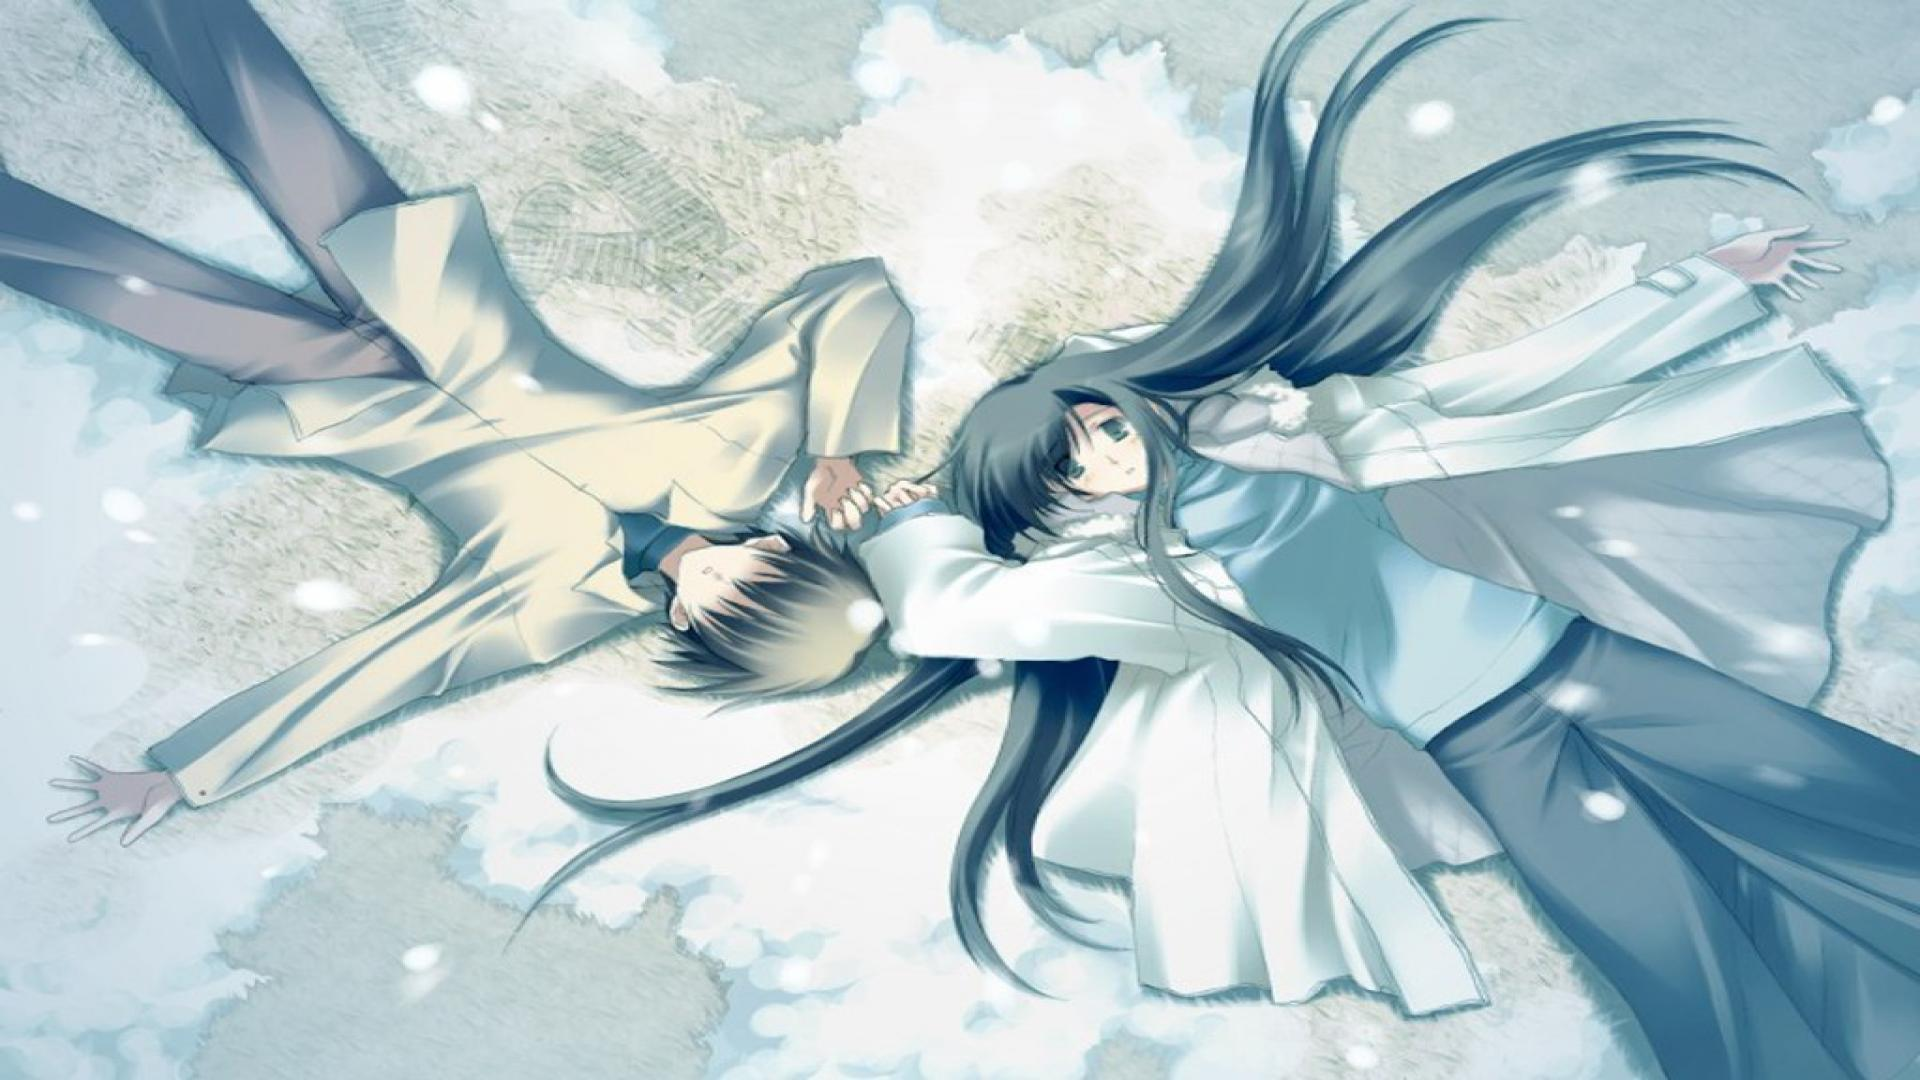 Cute Couples Cartoons Wallpapers Romantic Anime Wallpapers Wallpaper Cave